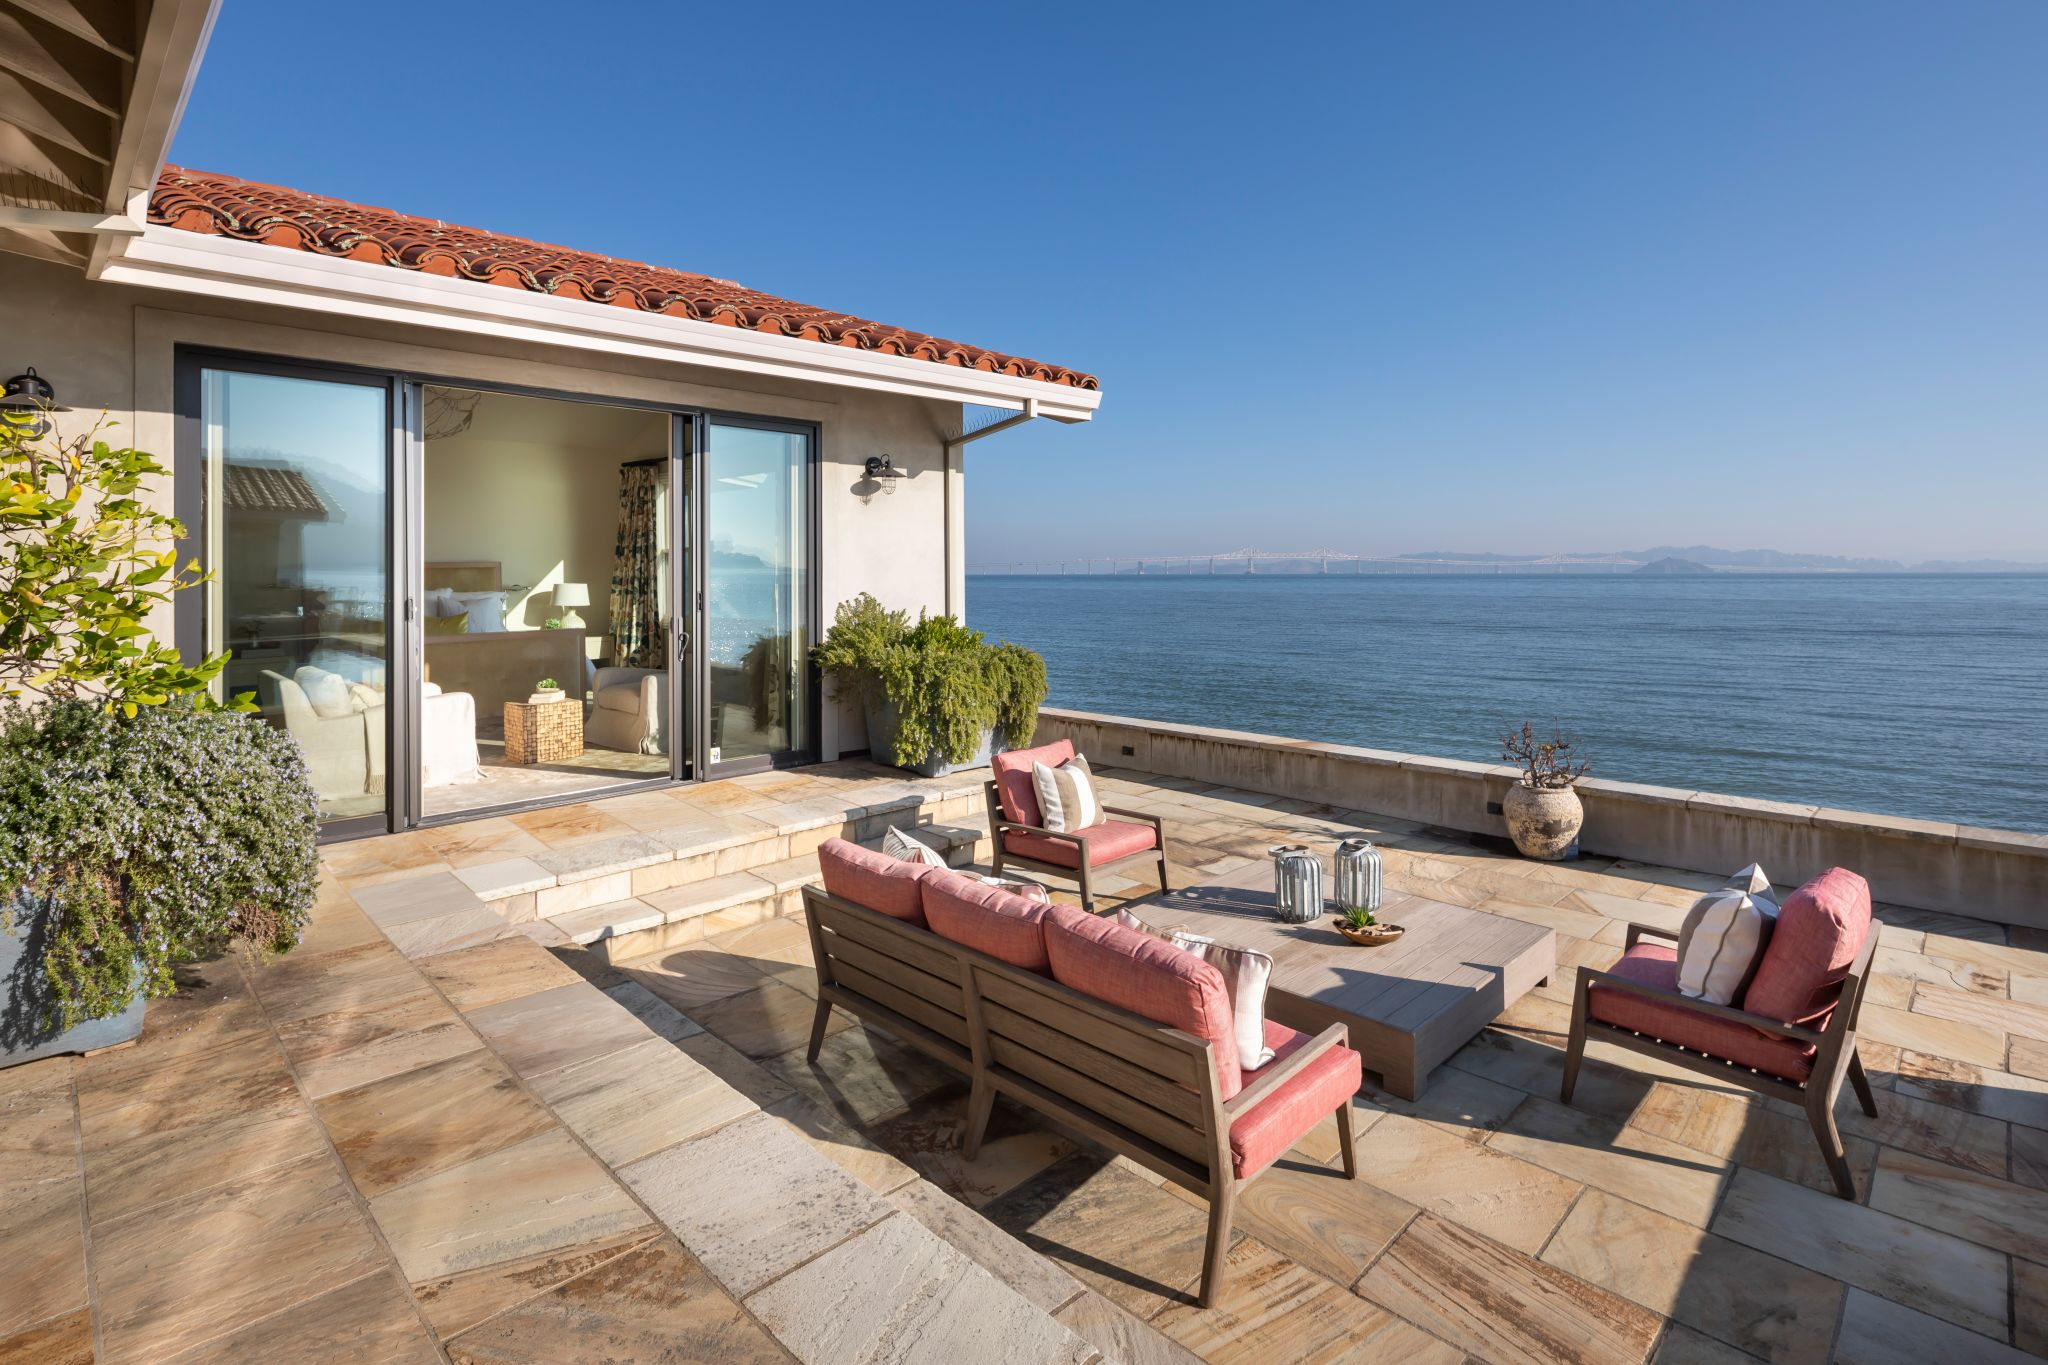 The outdoor patio features a pool and hot tub that overlook the Bay.